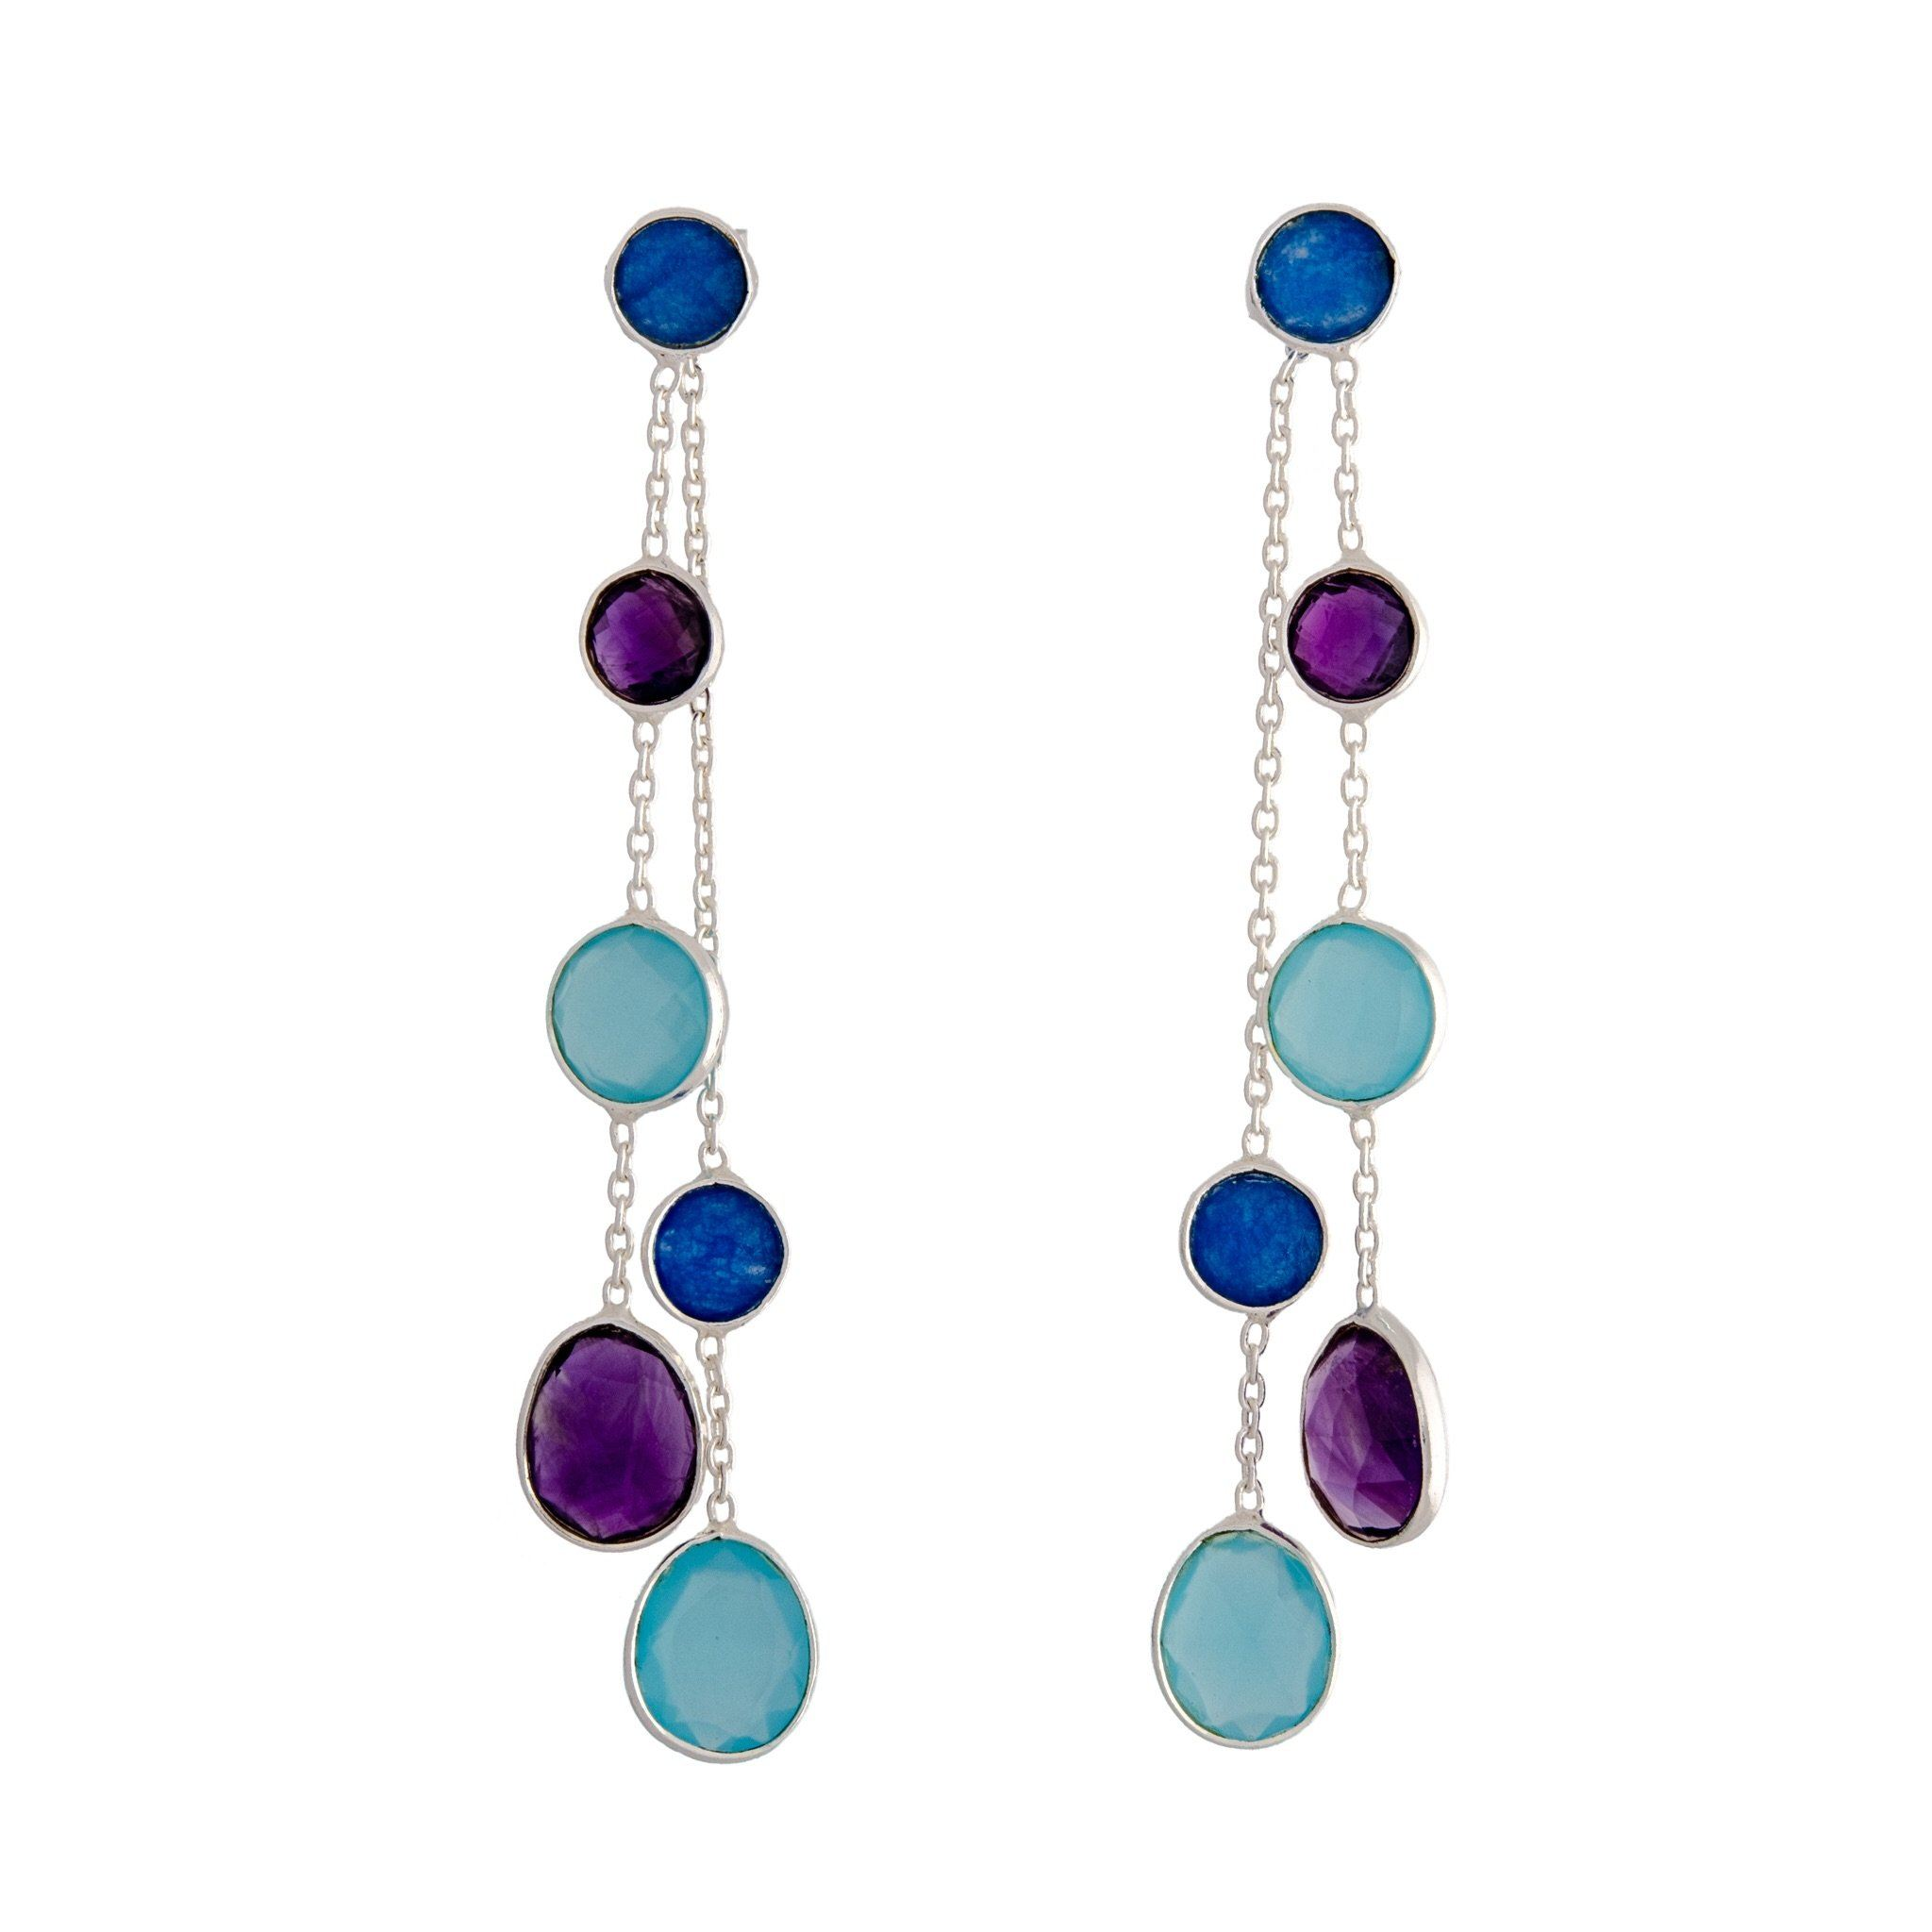 BUA blue chalcedony earrings - MadamSiam